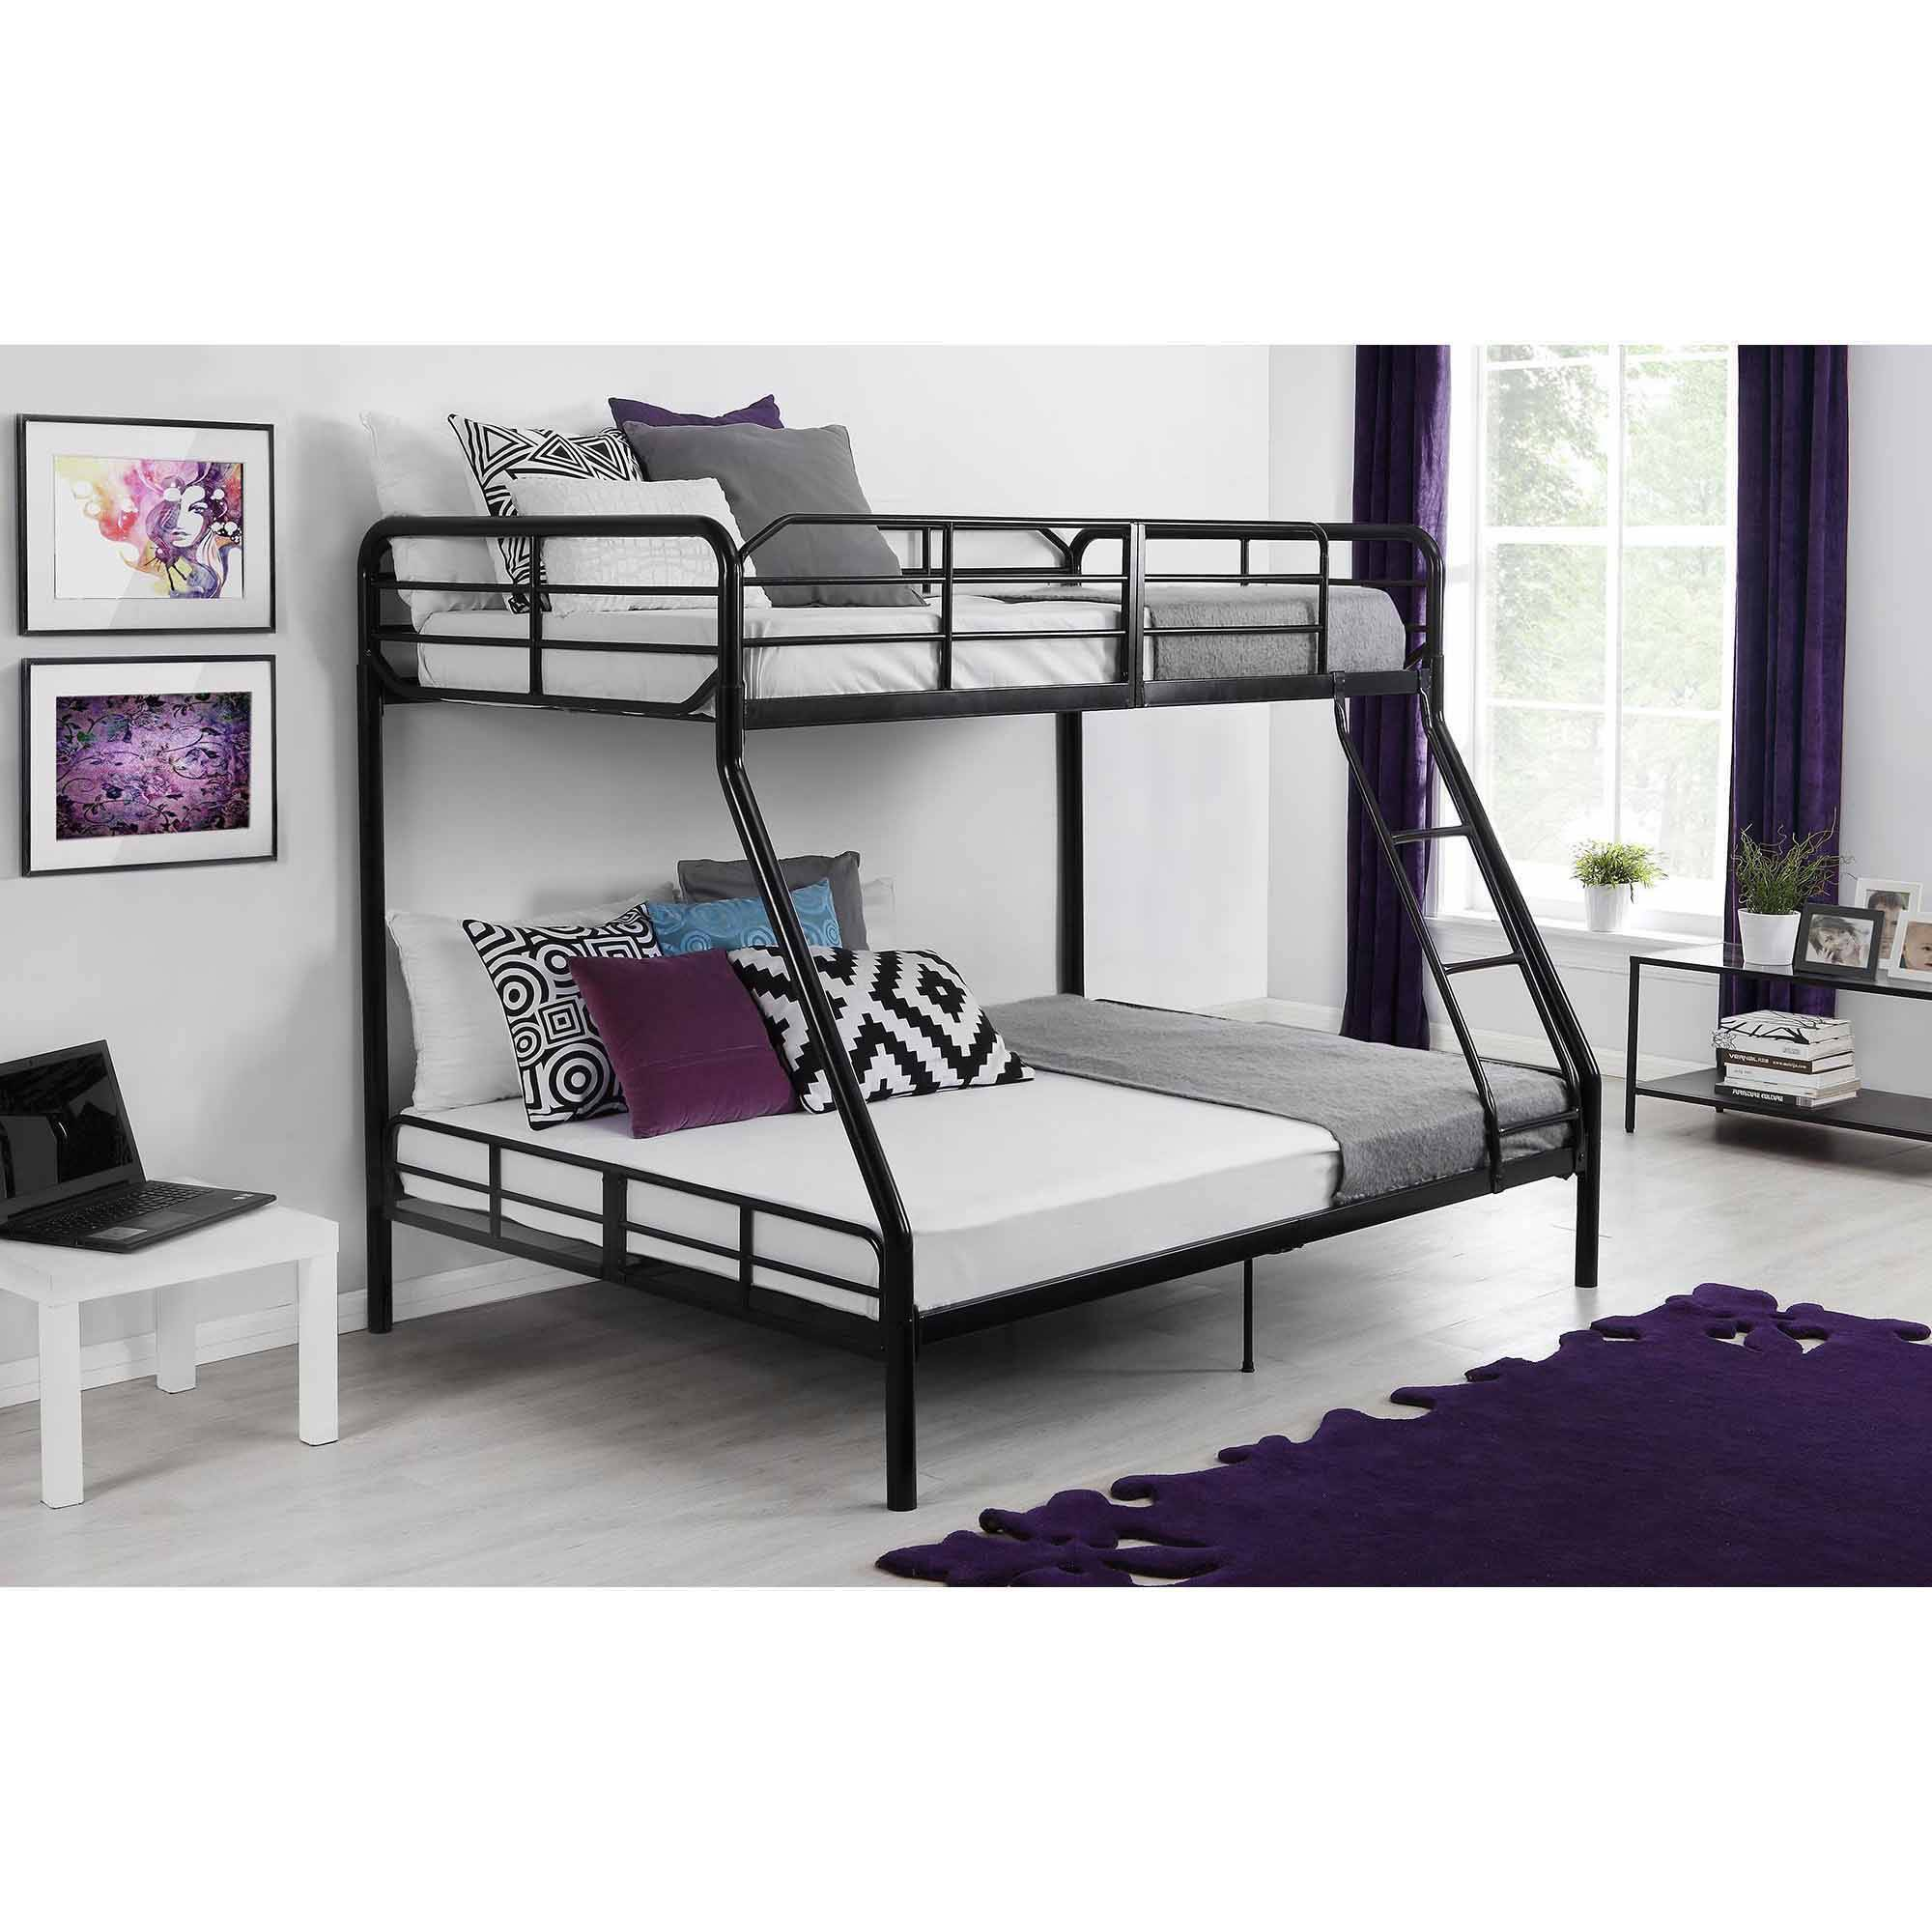 The Best Idea for Bed and Mattress Sets